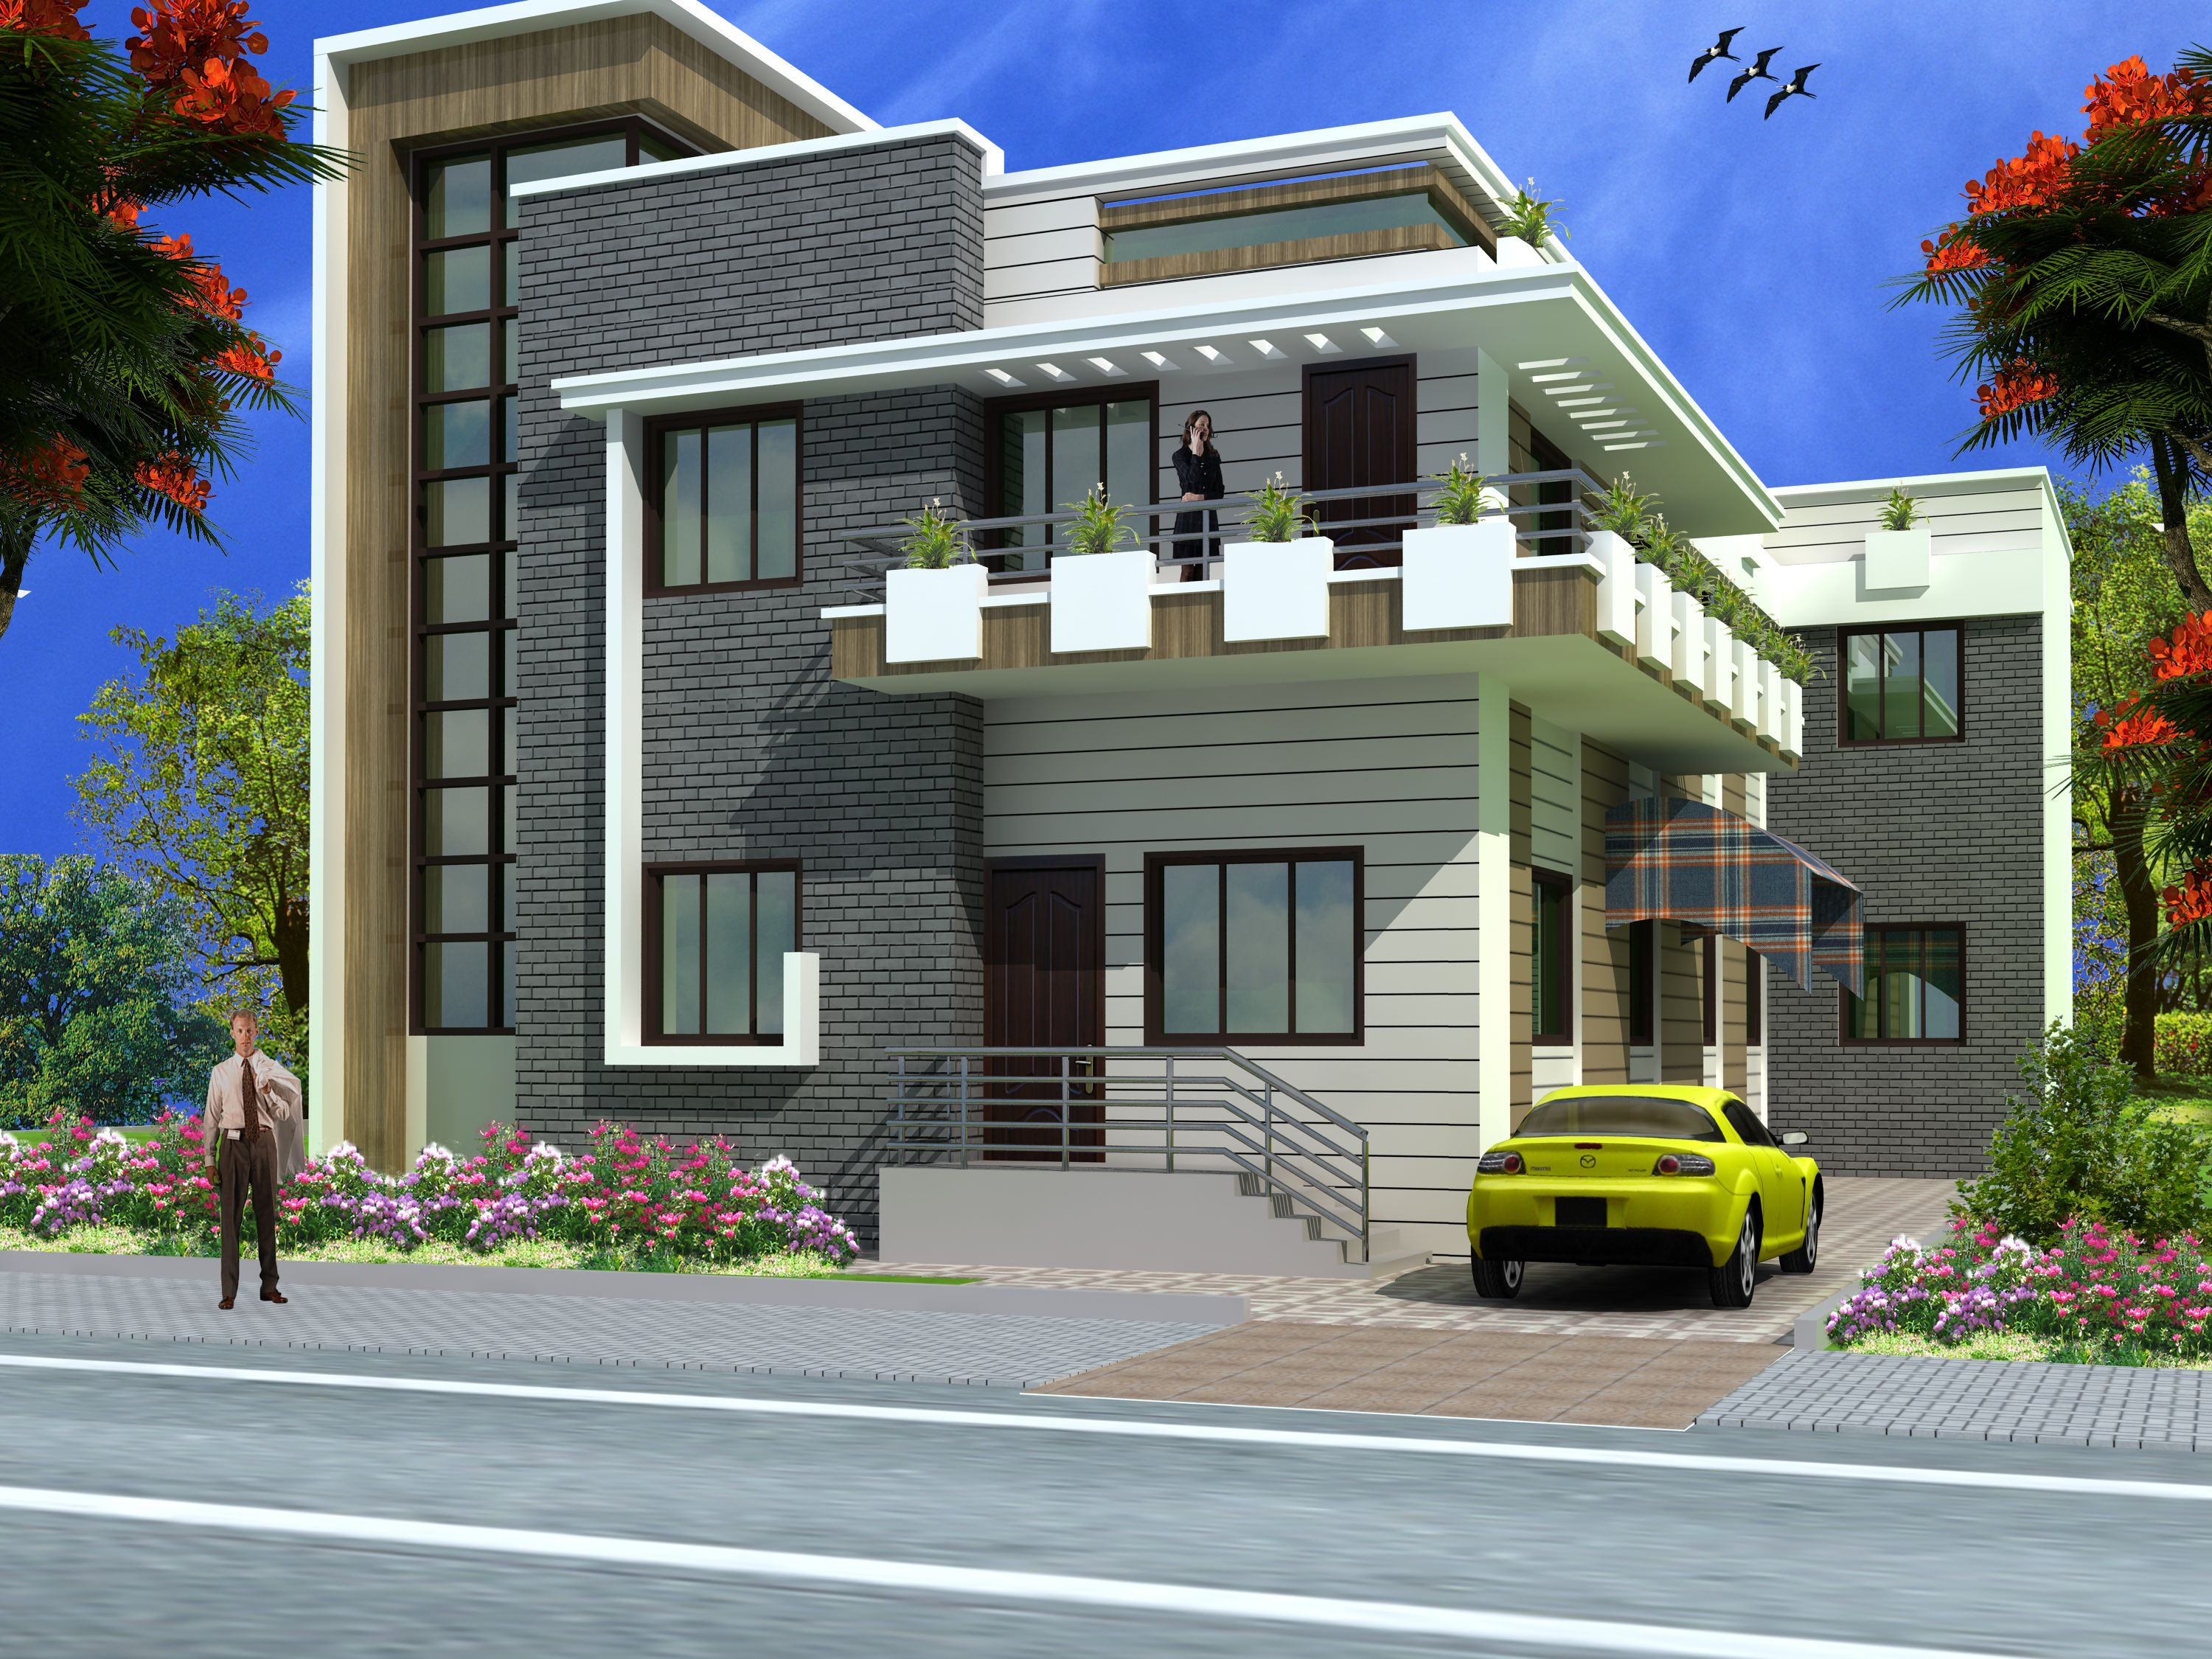 Modern duplex 2 floor house design click on this link Indian model house plan design